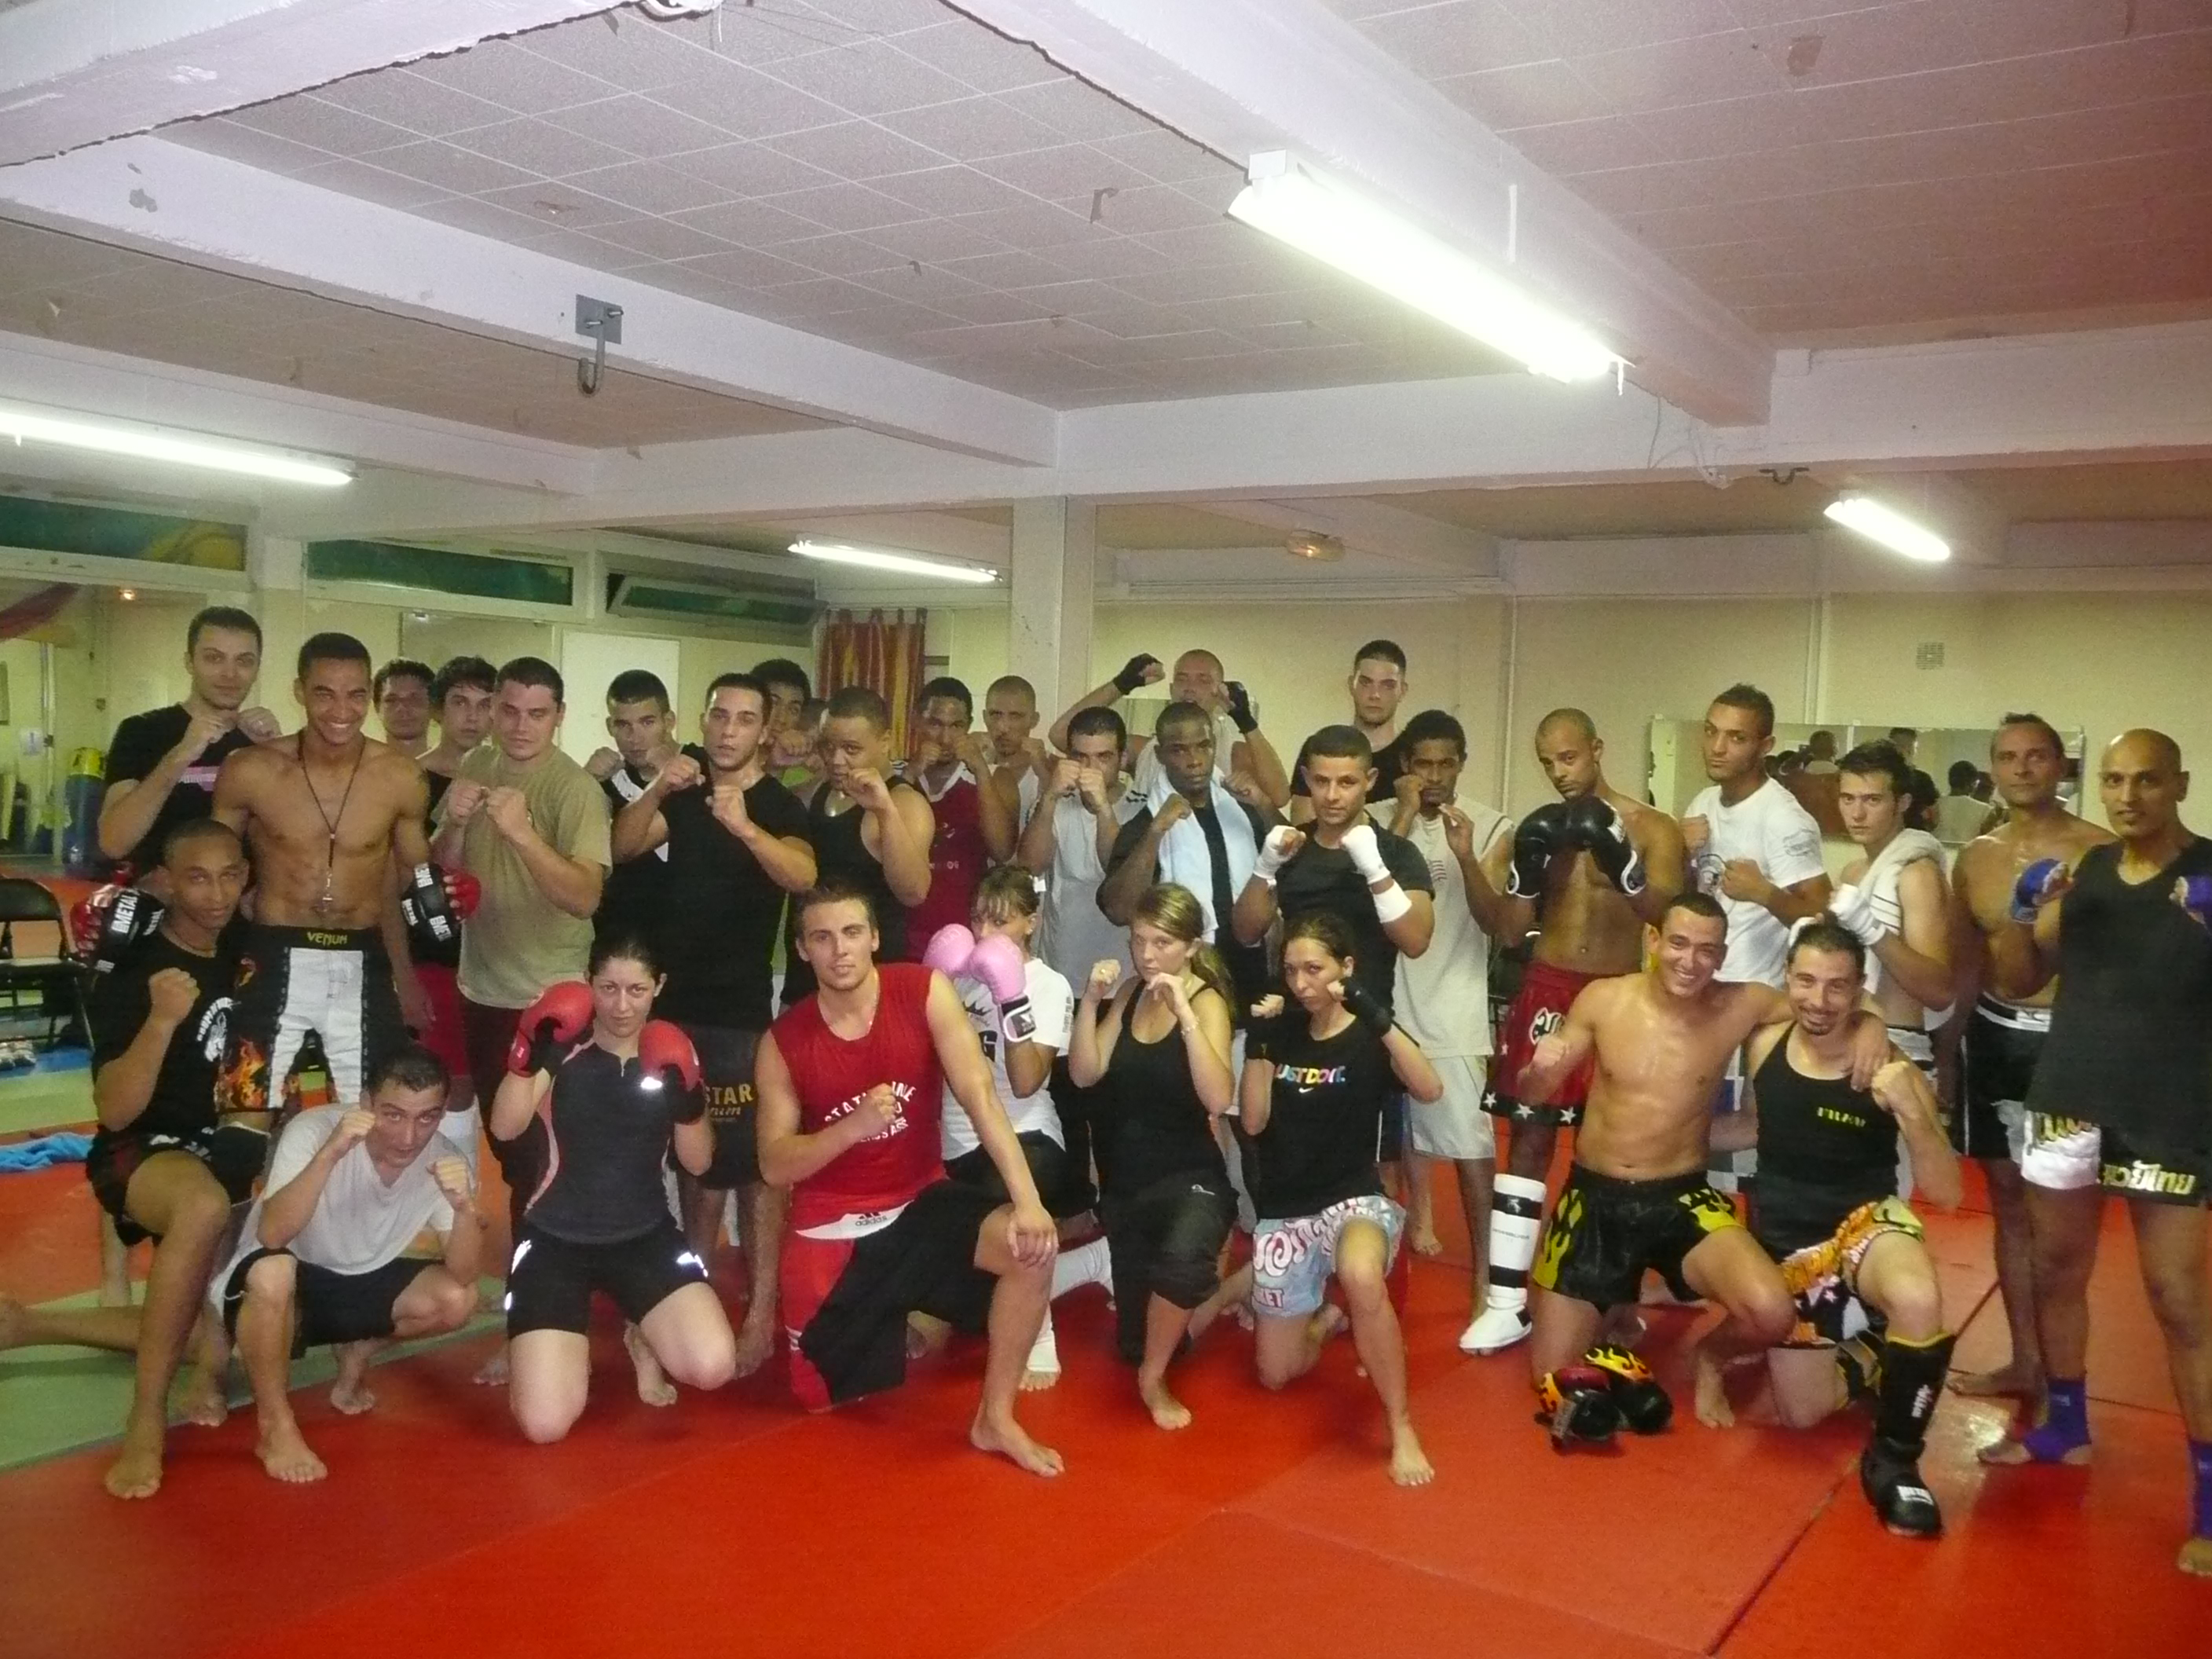 Une rentrée sportive de folie au Body-Fighting Club de Montpellier!!!